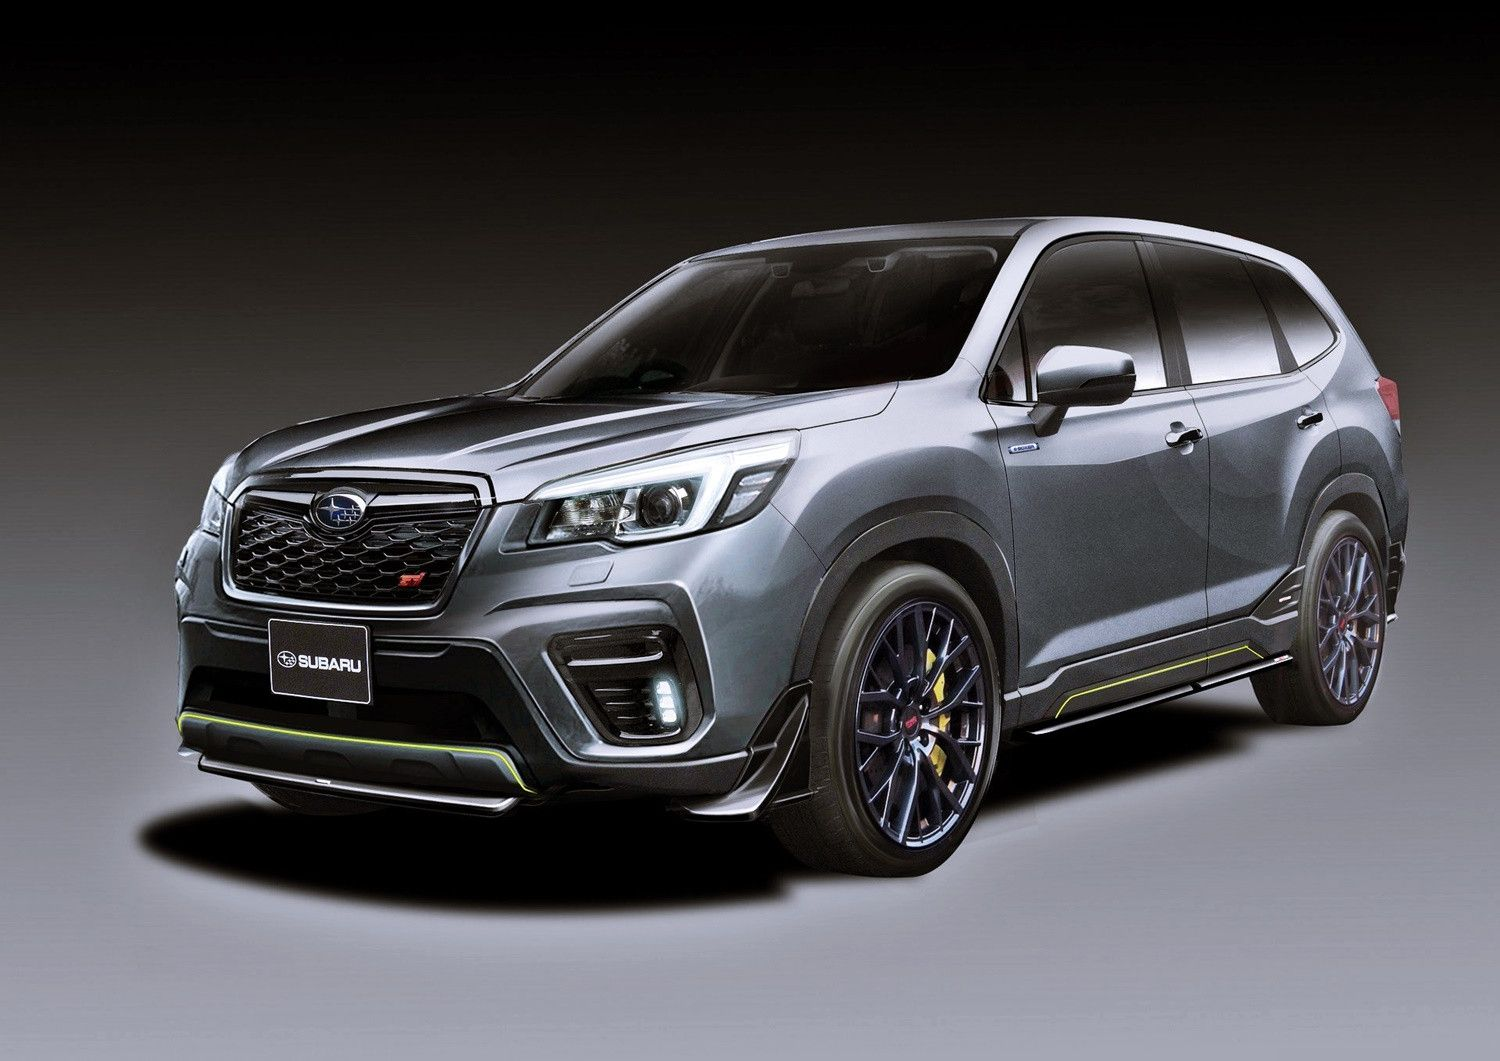 2020 Subaru Forester Release Date Review And Release Date Check More At Https Blog Dailymaza Me 2020 Subaru Forester Release Date Review And Release Date Di 2020